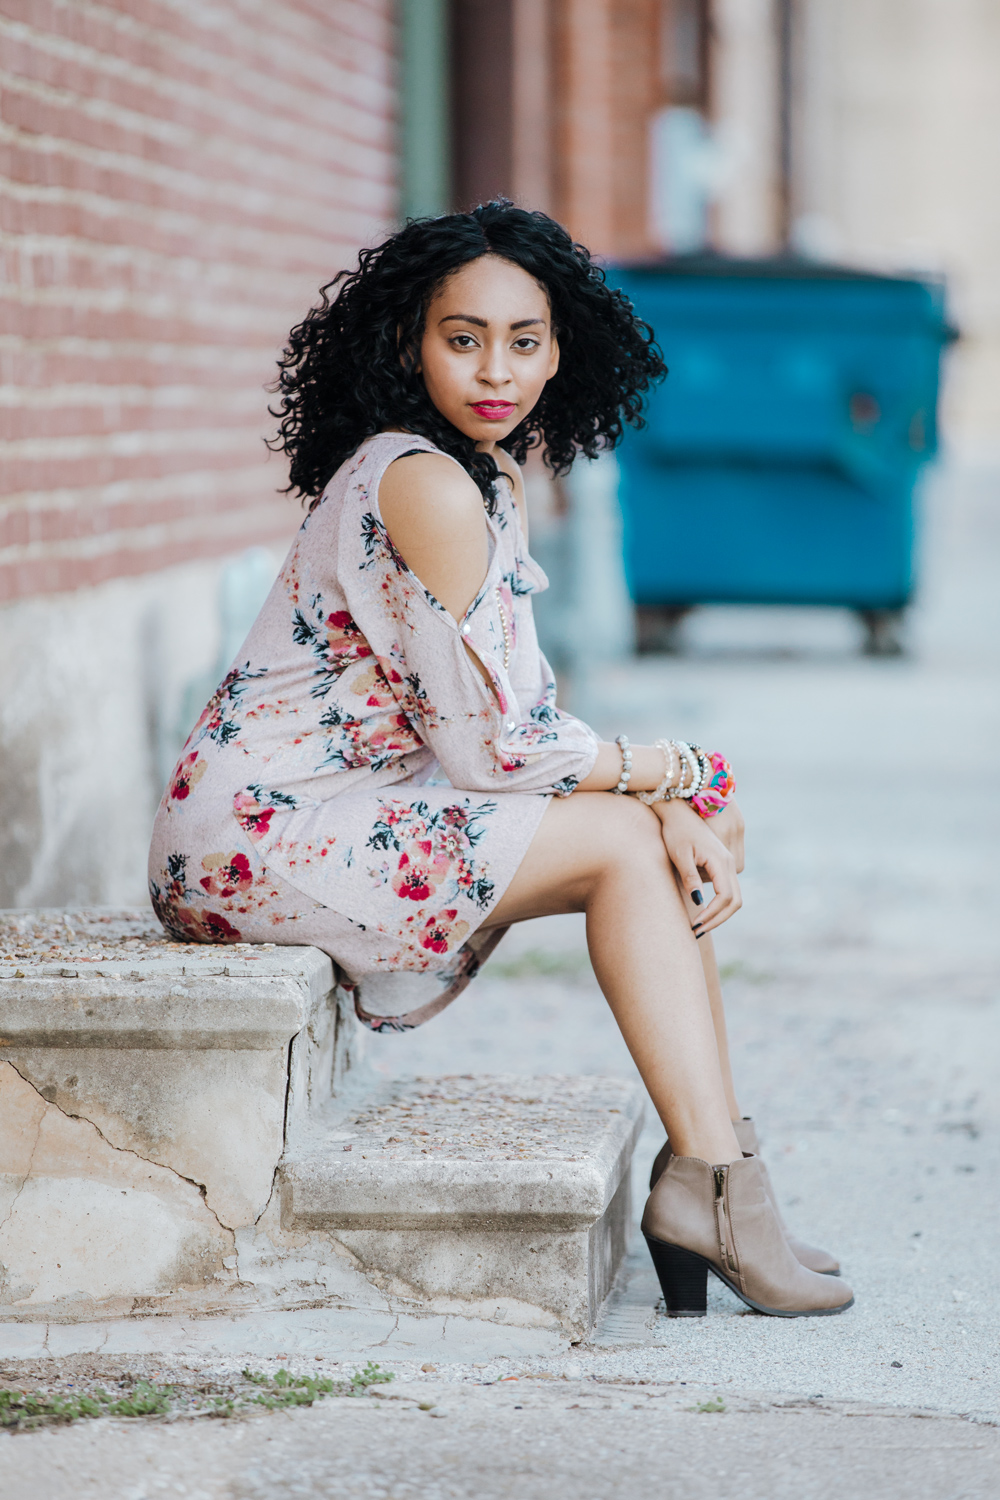 High school senior girl wearing floral dress and heels, sitting on stairs in downtown Shawnee.